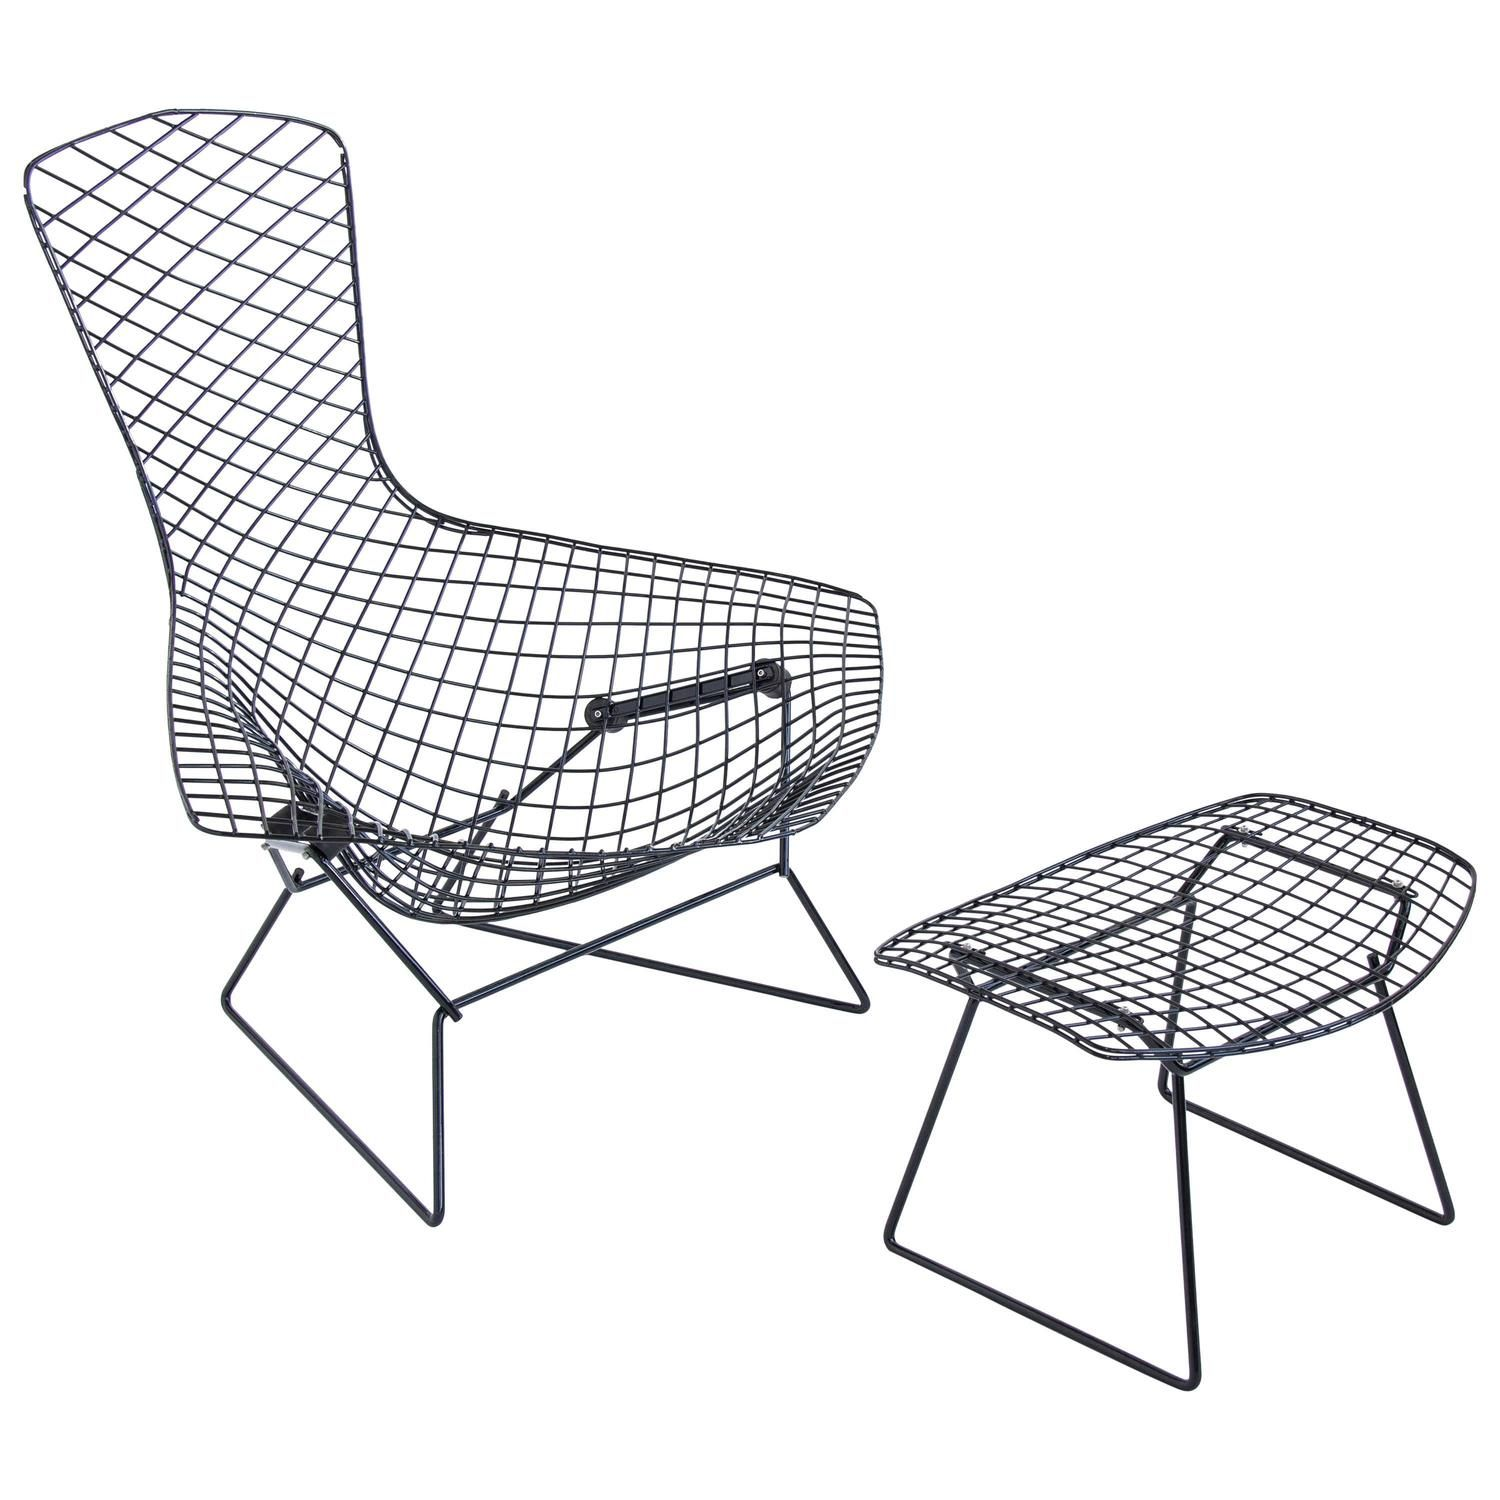 Bird Chair By Hary Bertoia For Knoll 1stdibs Com Furniture Iconic Furniture Chair